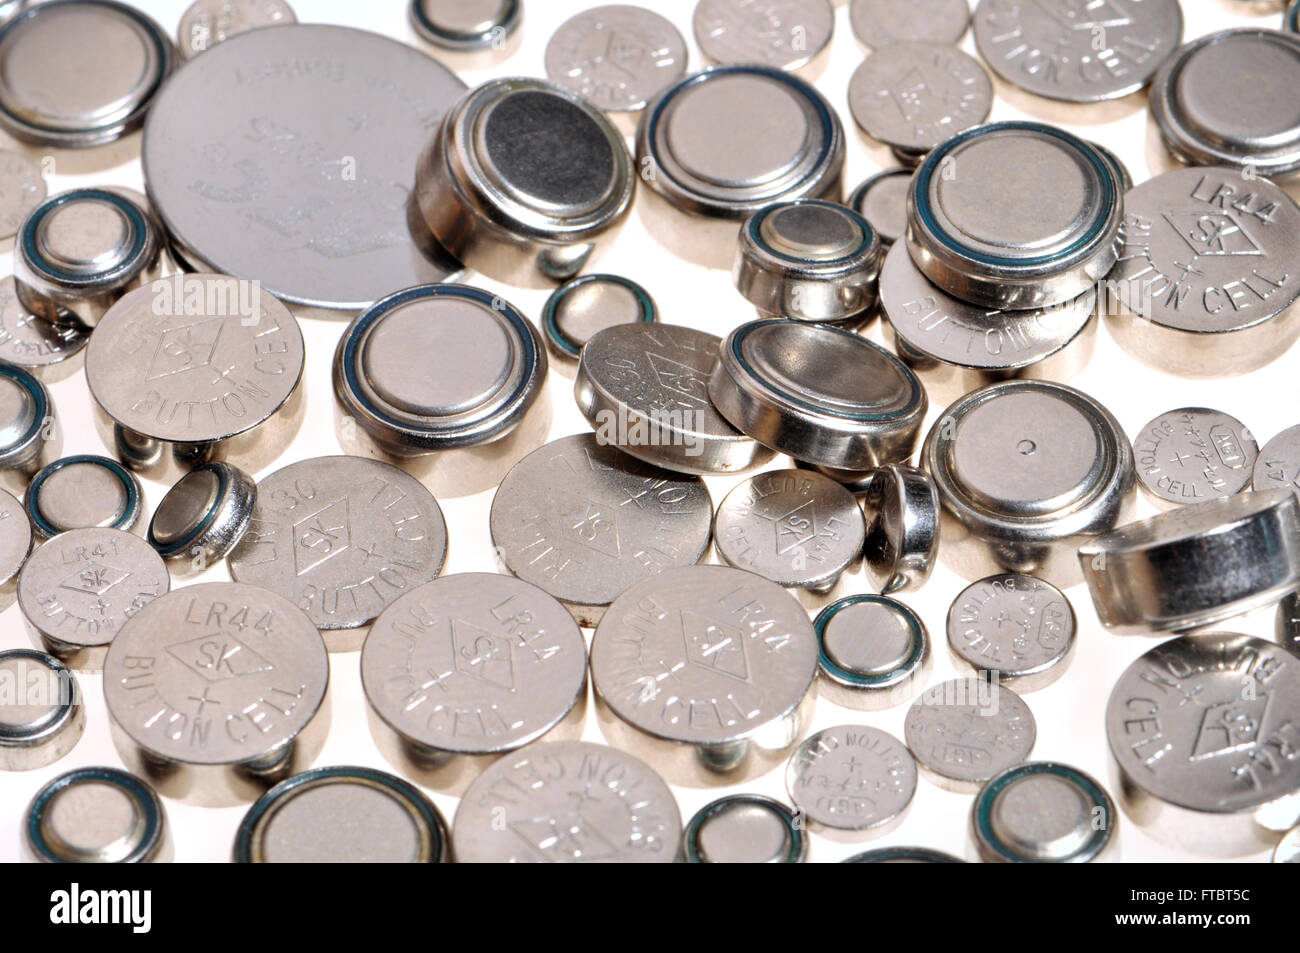 Button cell batteries for electronic devices - various sizes - Stock Image